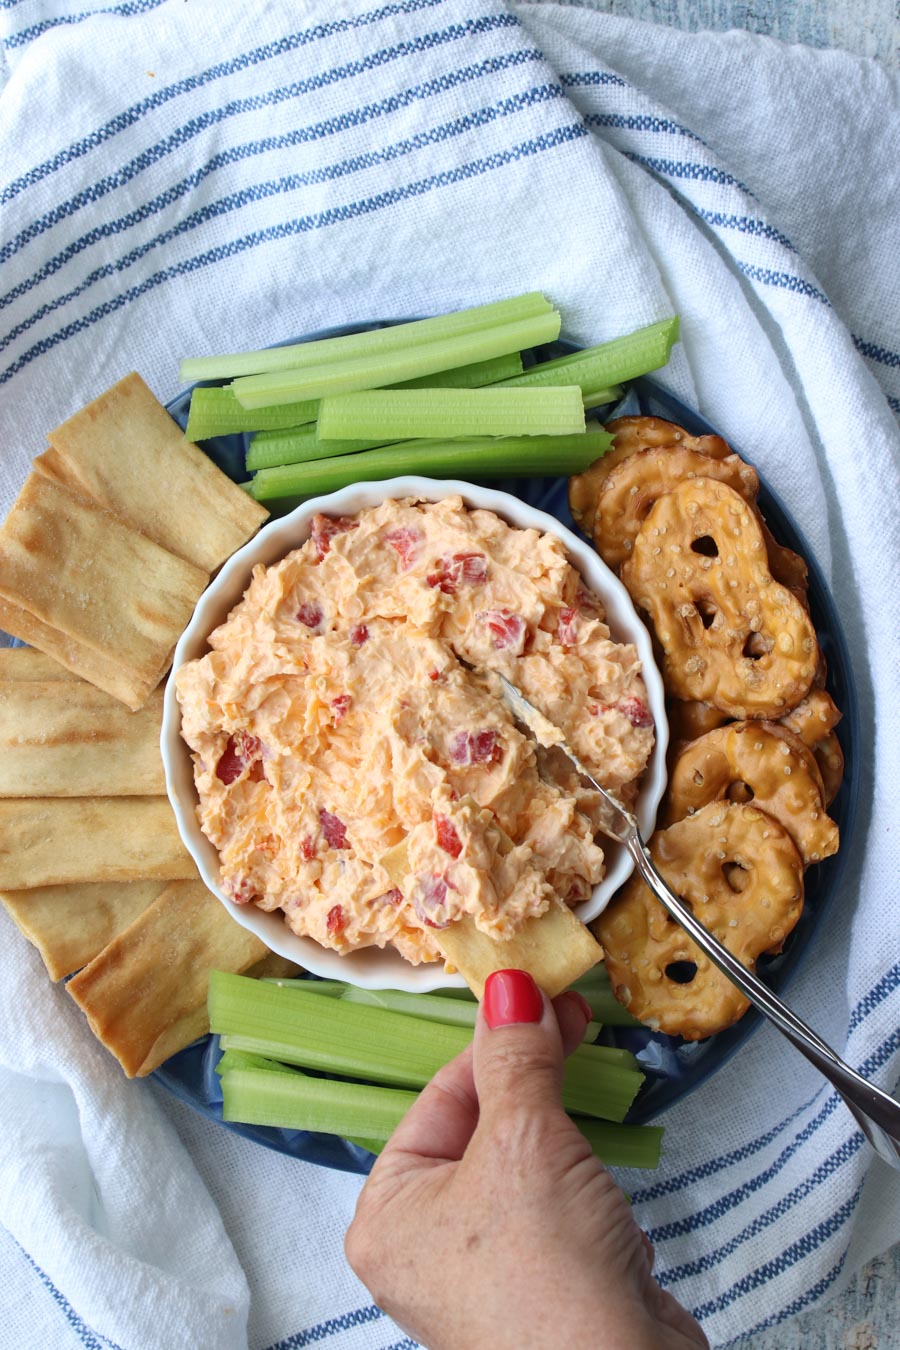 woman's hand dipping cracker into bowl of pimento cheese